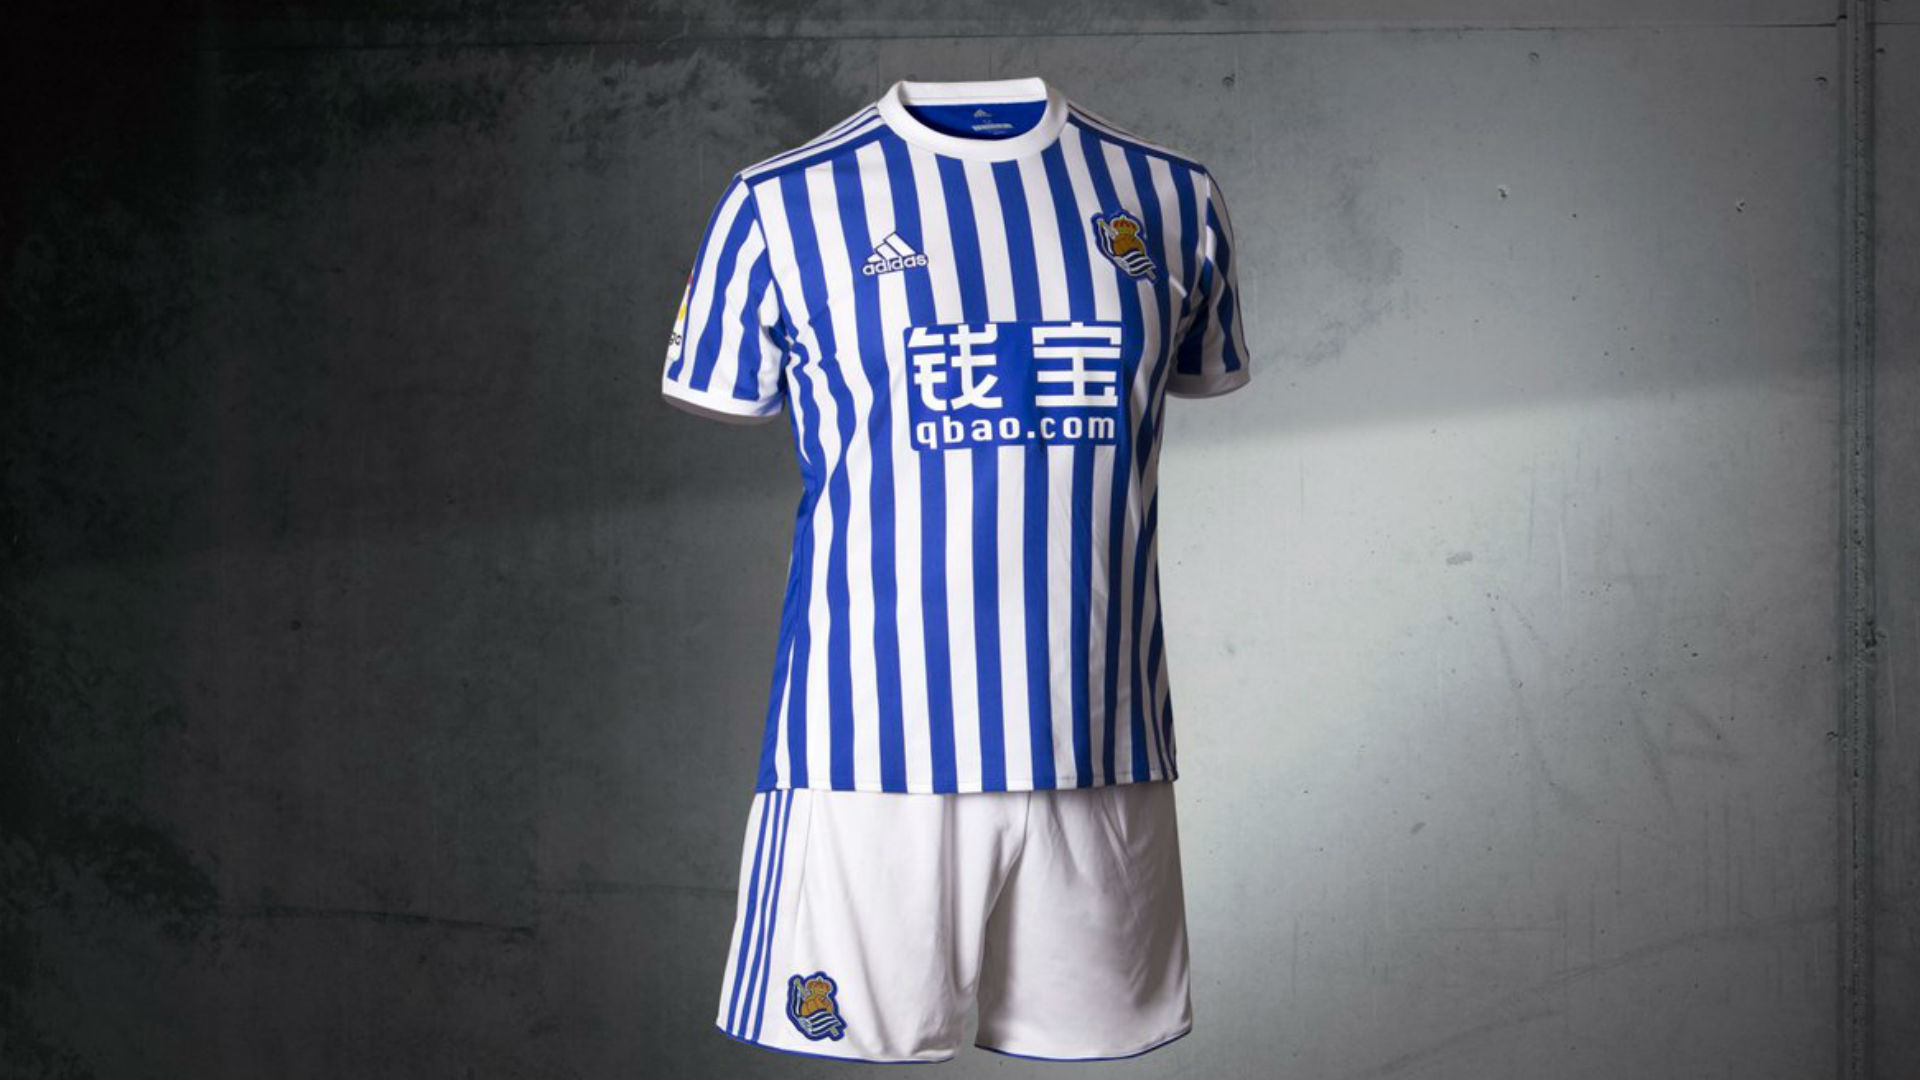 uniforme real sociedad 2017-18